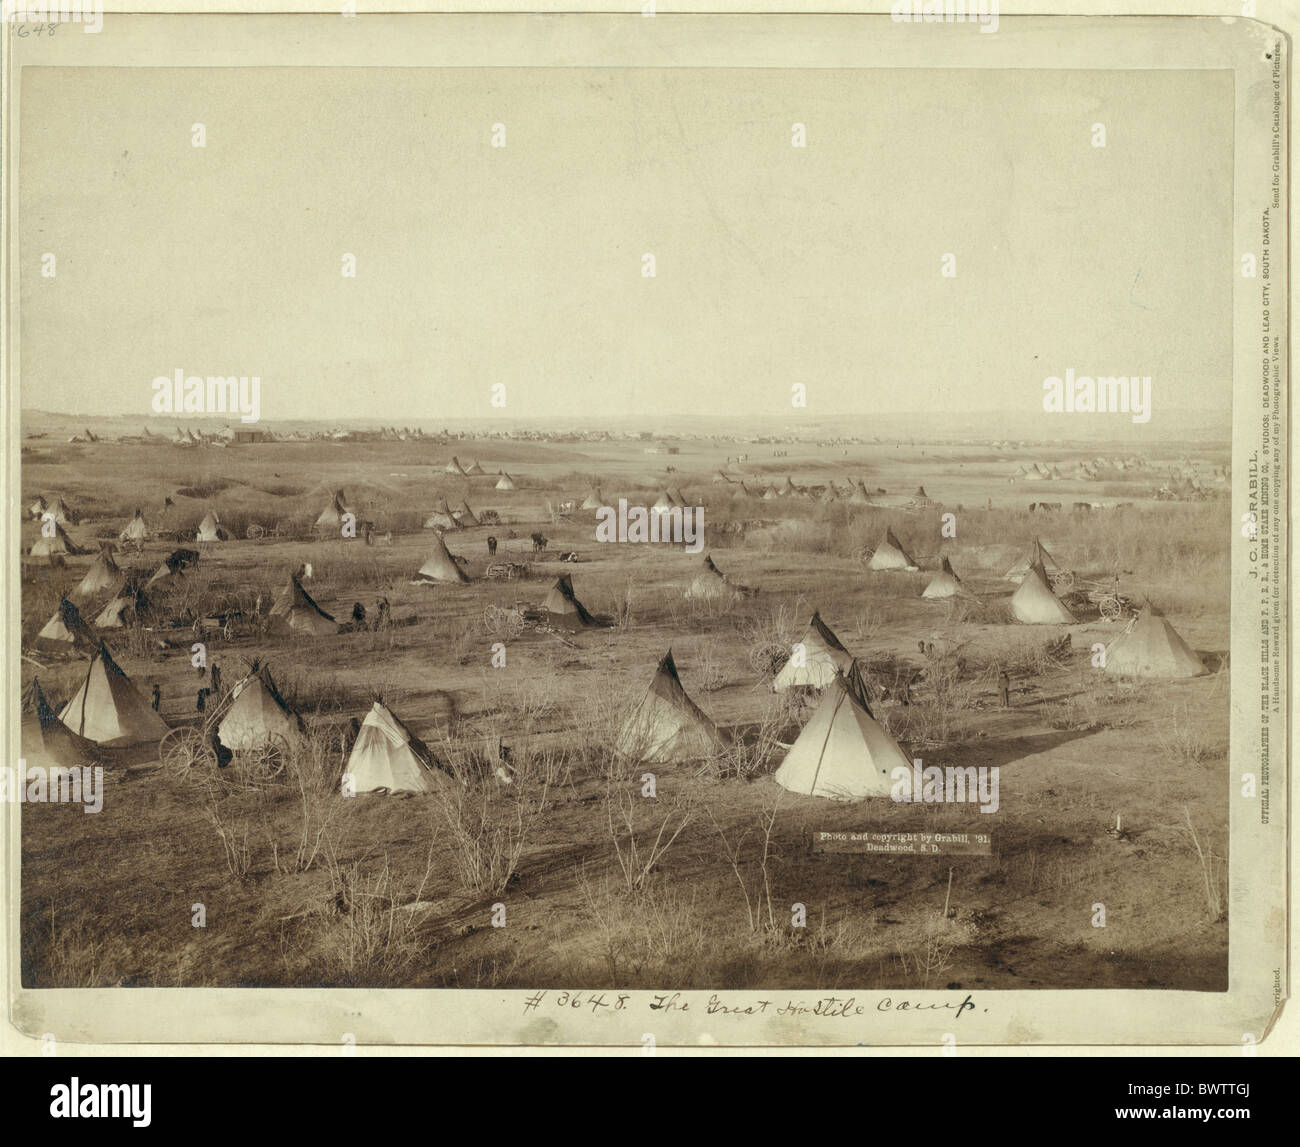 USA America United States North America Indians indian camp tipis war Photo John Grabill ca. 1890 prairie p - Stock Image